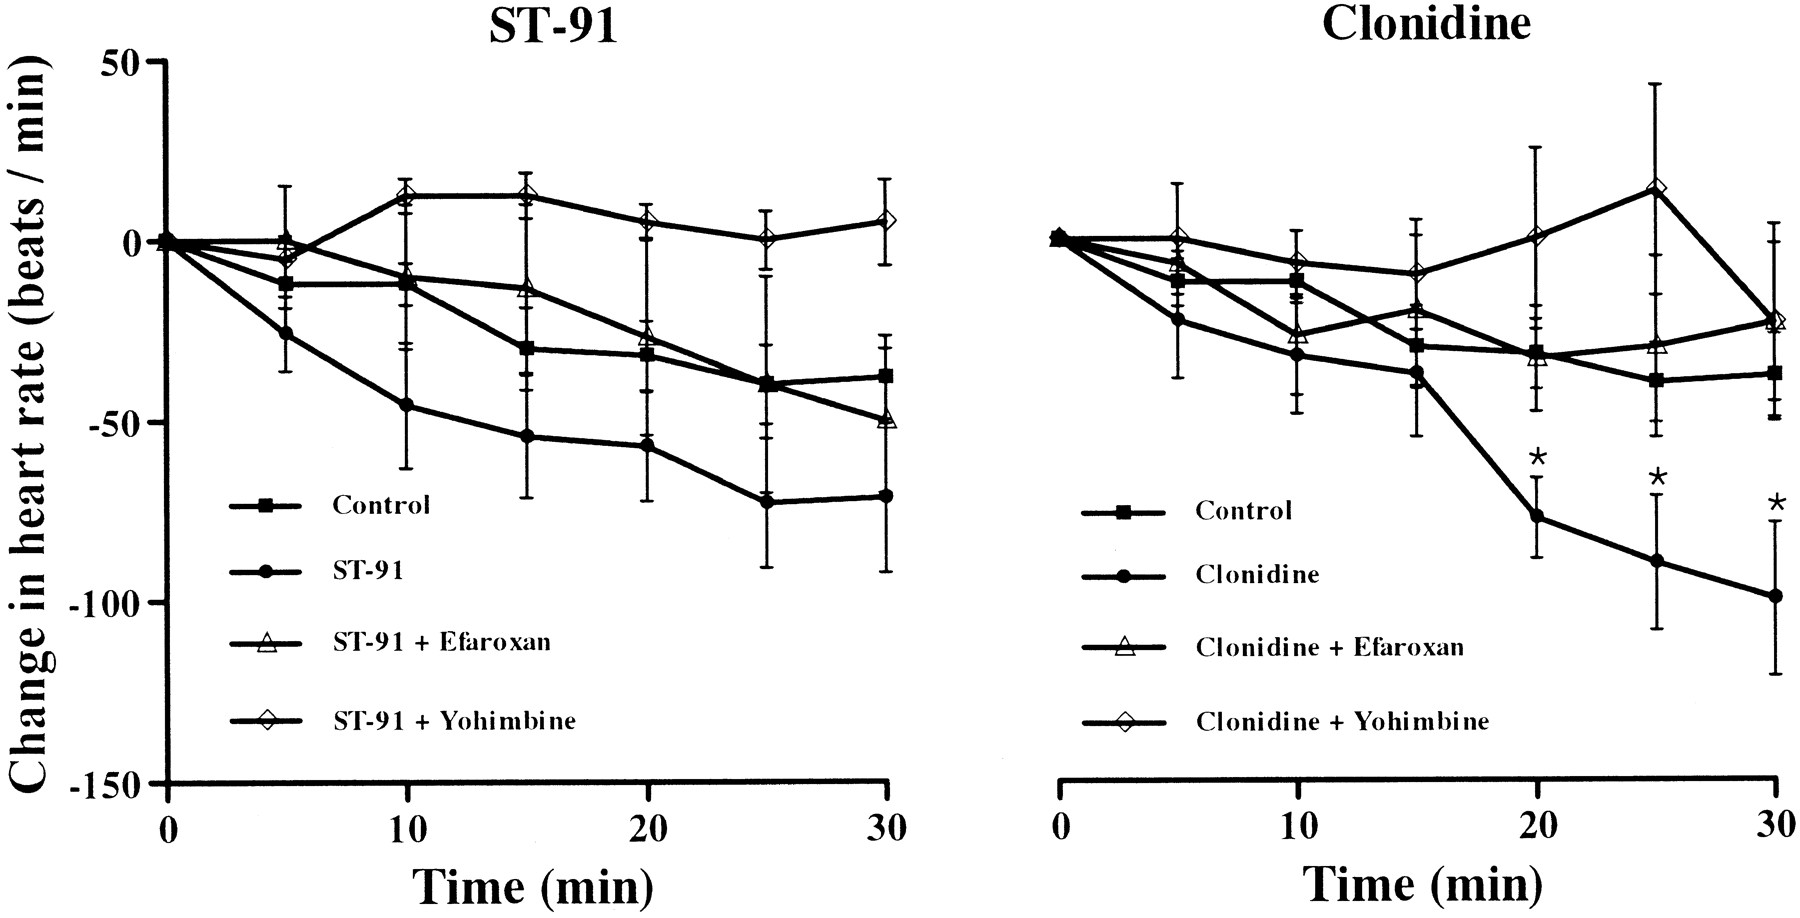 Clonidine and ST-91 May Activate Imidazoline Binding Sites